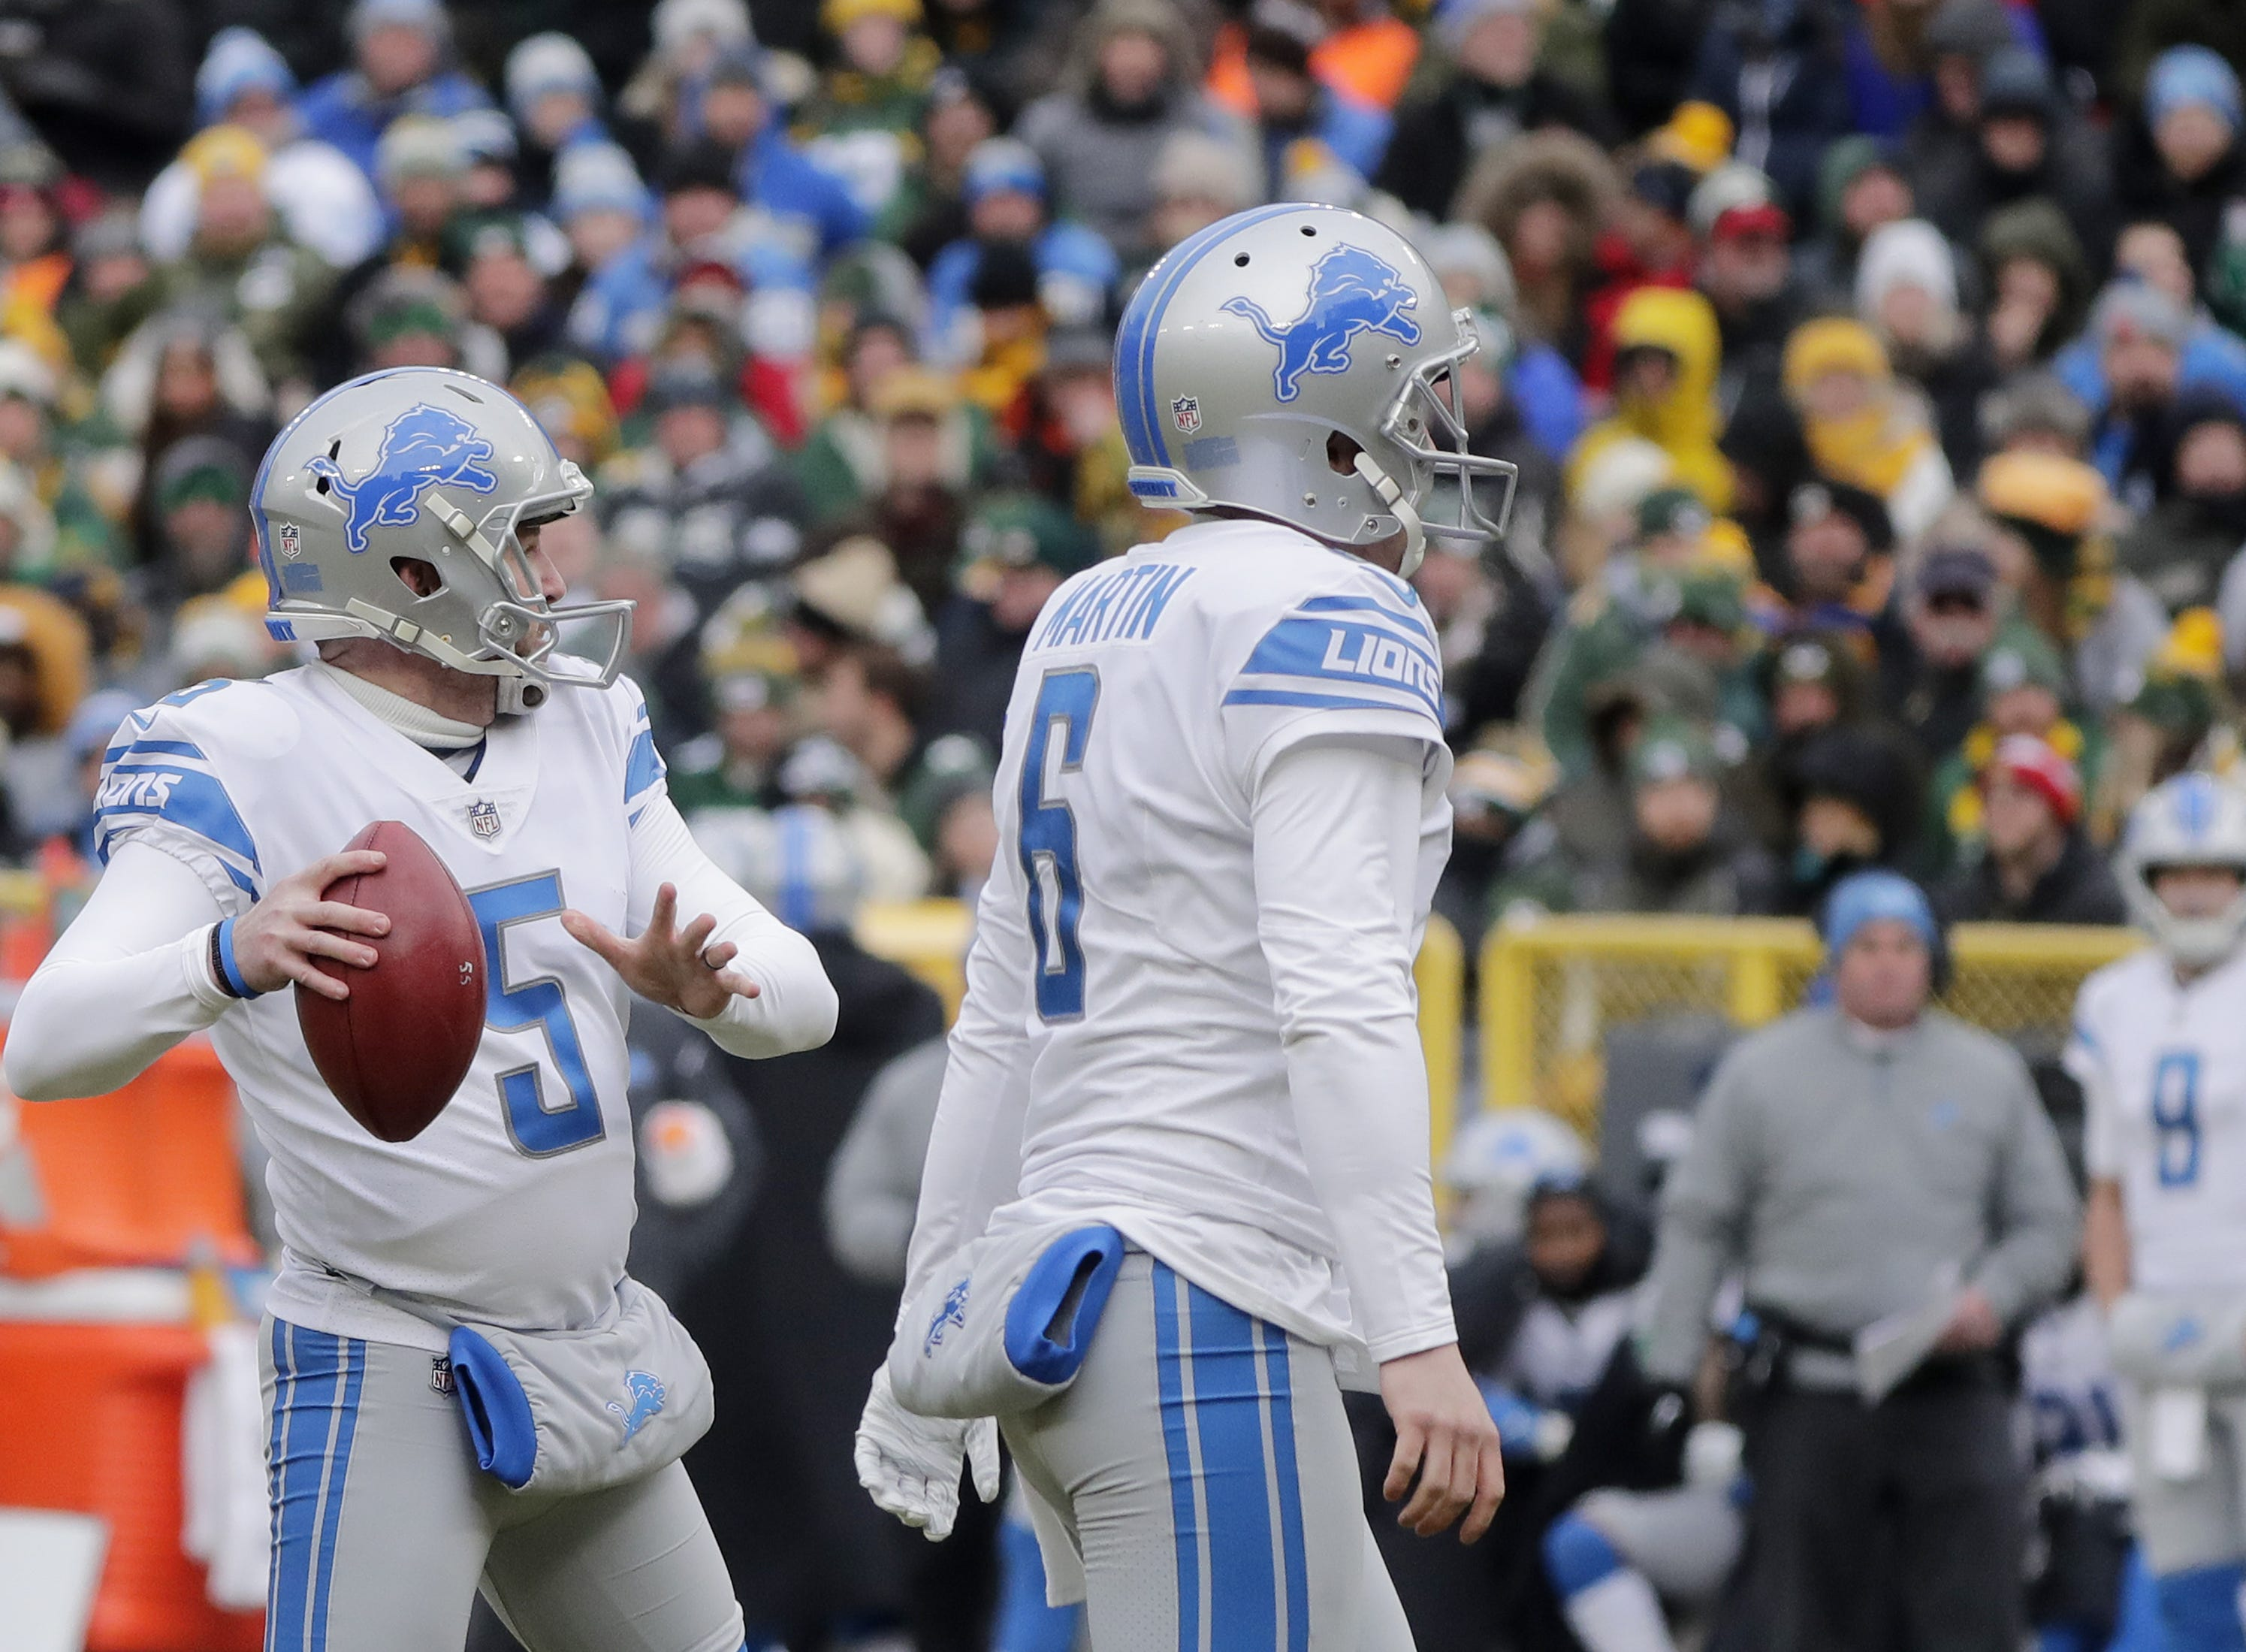 Detroit Lions kicker Matt Prater (5) throws a touchdown pass in the second quarter against the Green Bay Packers at Lambeau Field on Sunday, December 30, 2018 in Green Bay, Wis. Adam Wesley/USA TODAY NETWORK-Wis